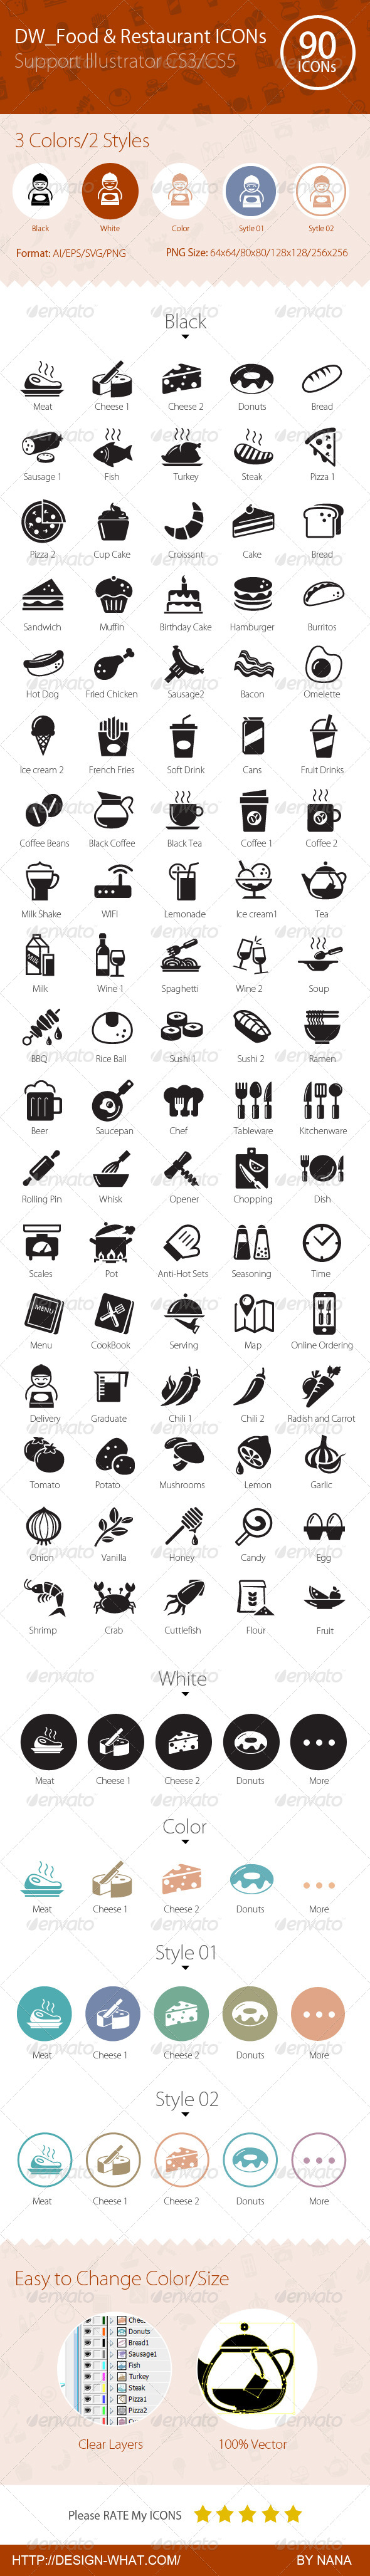 90 Food & Restaurant ICONs - Web Icons